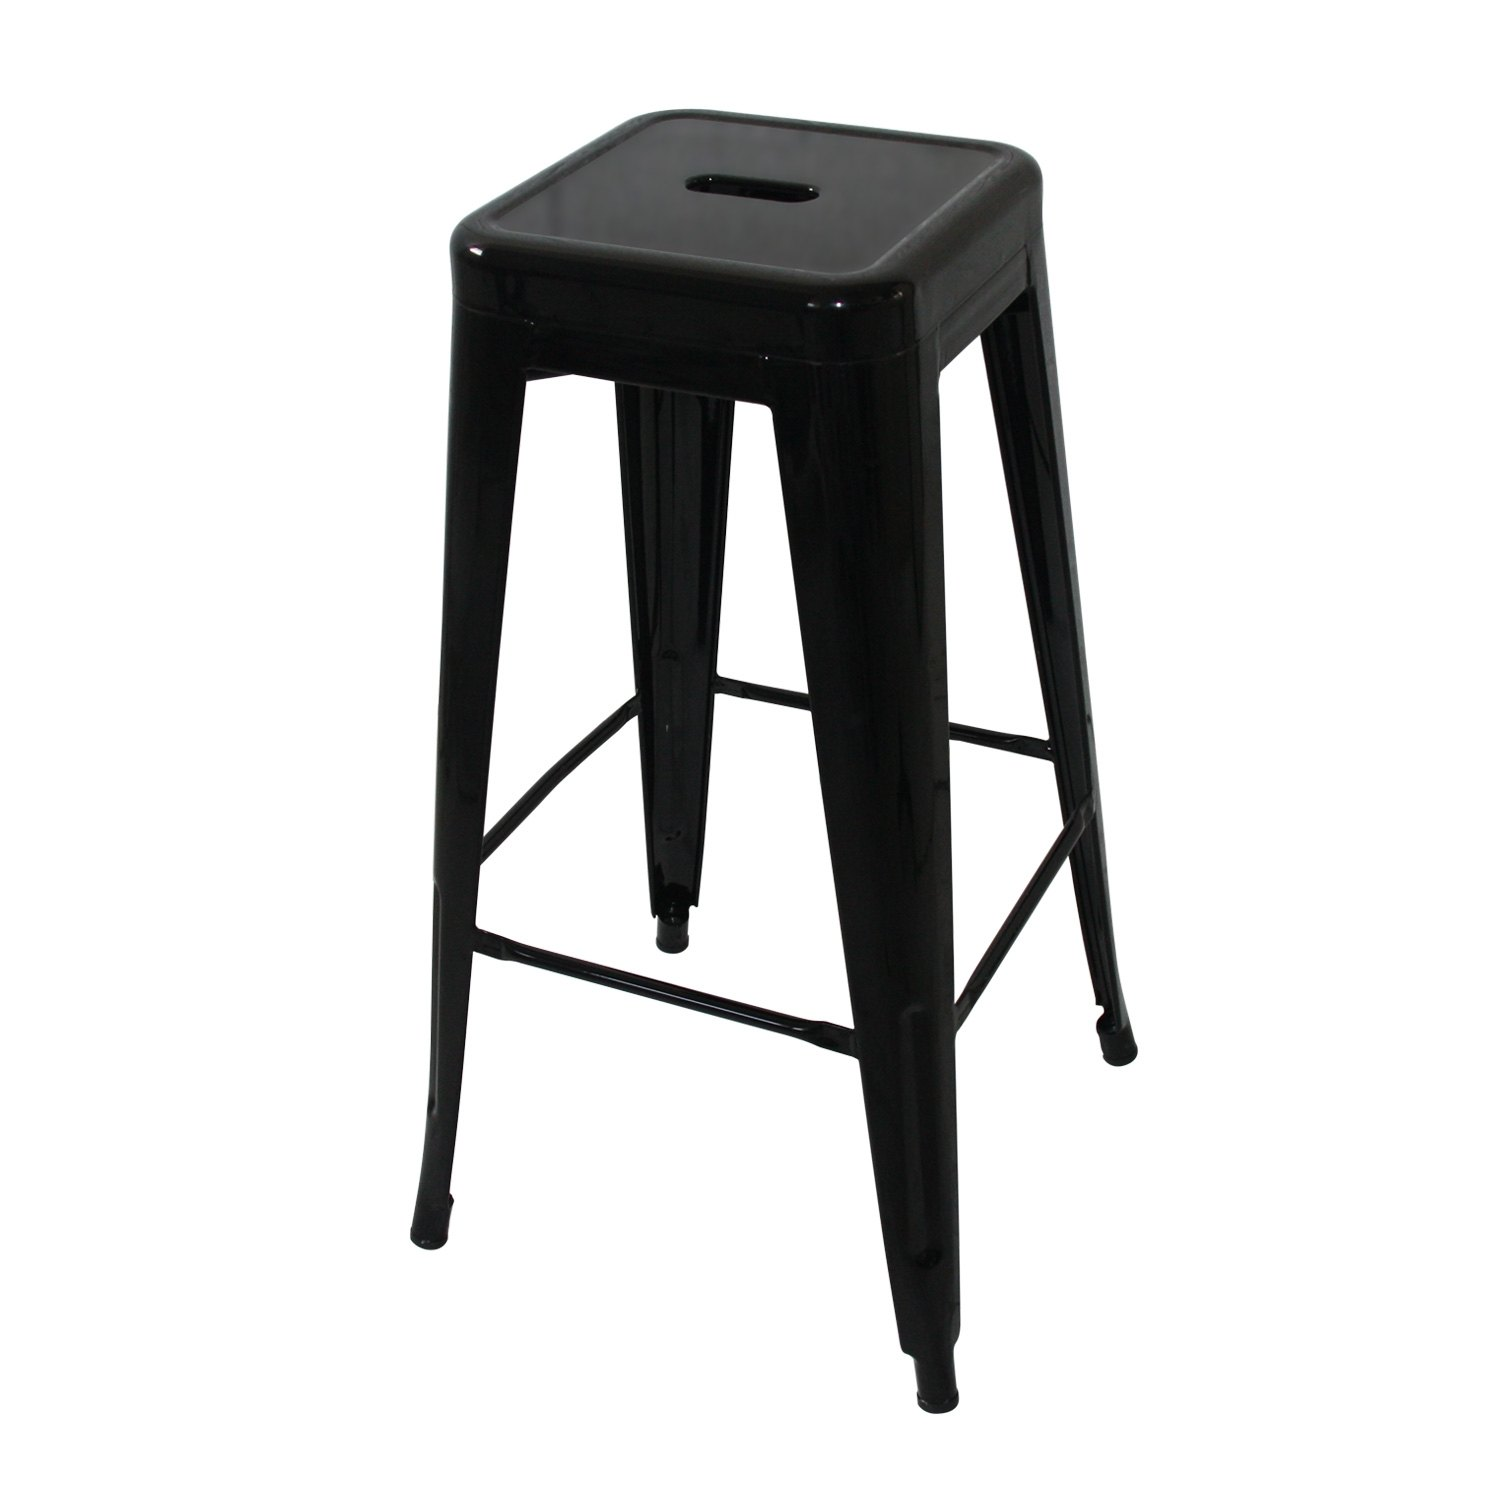 tabouret tolix r plique industriel tabourets tolix pas cher. Black Bedroom Furniture Sets. Home Design Ideas